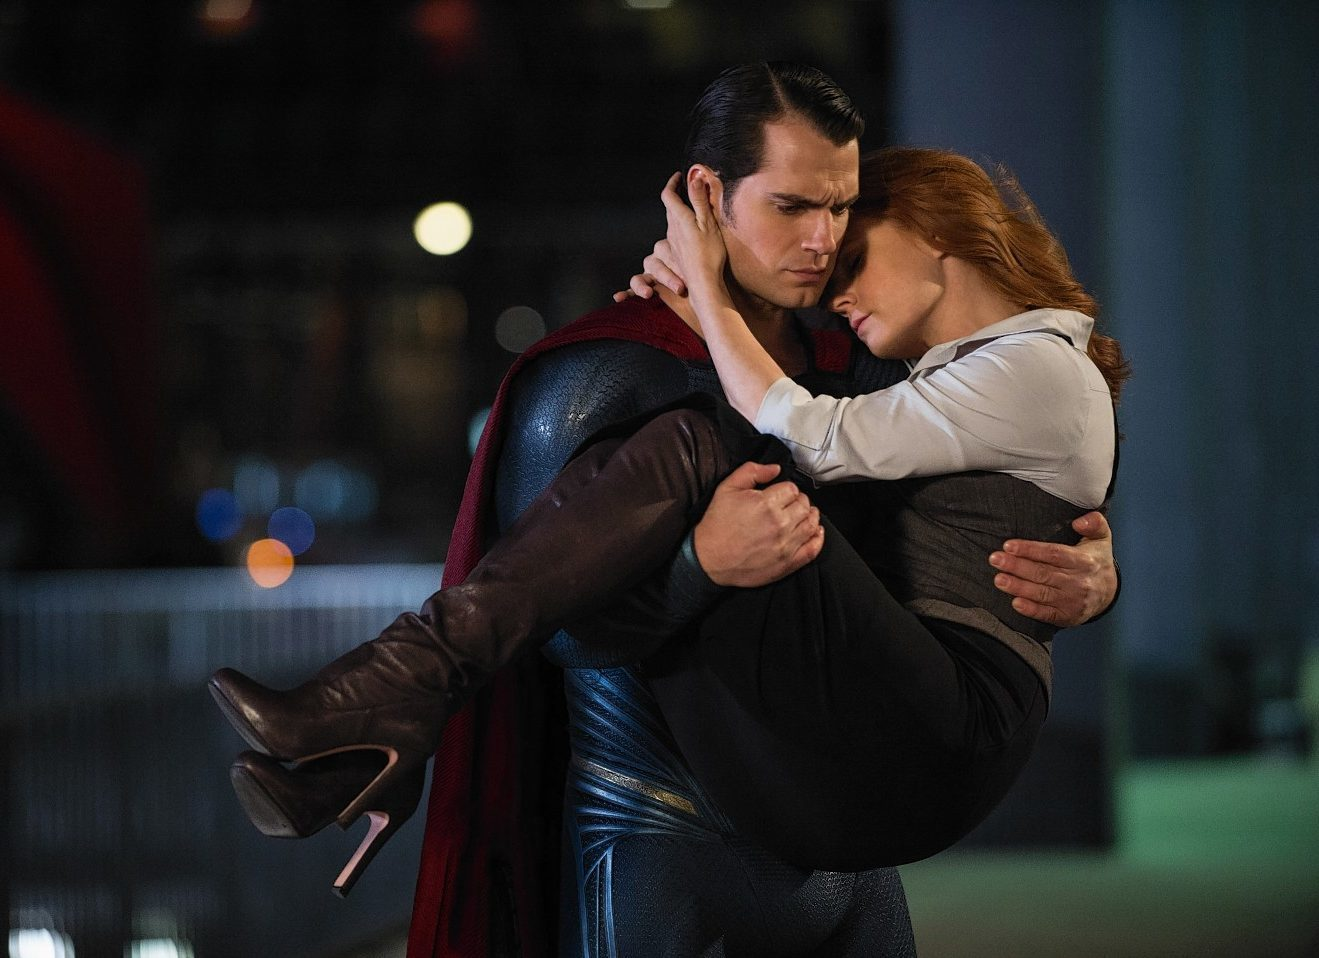 Enjoying the acting of Amy Adams as Lois Lane and Henry Cavill as Clark Kent/Superman wasn't enough for one couple